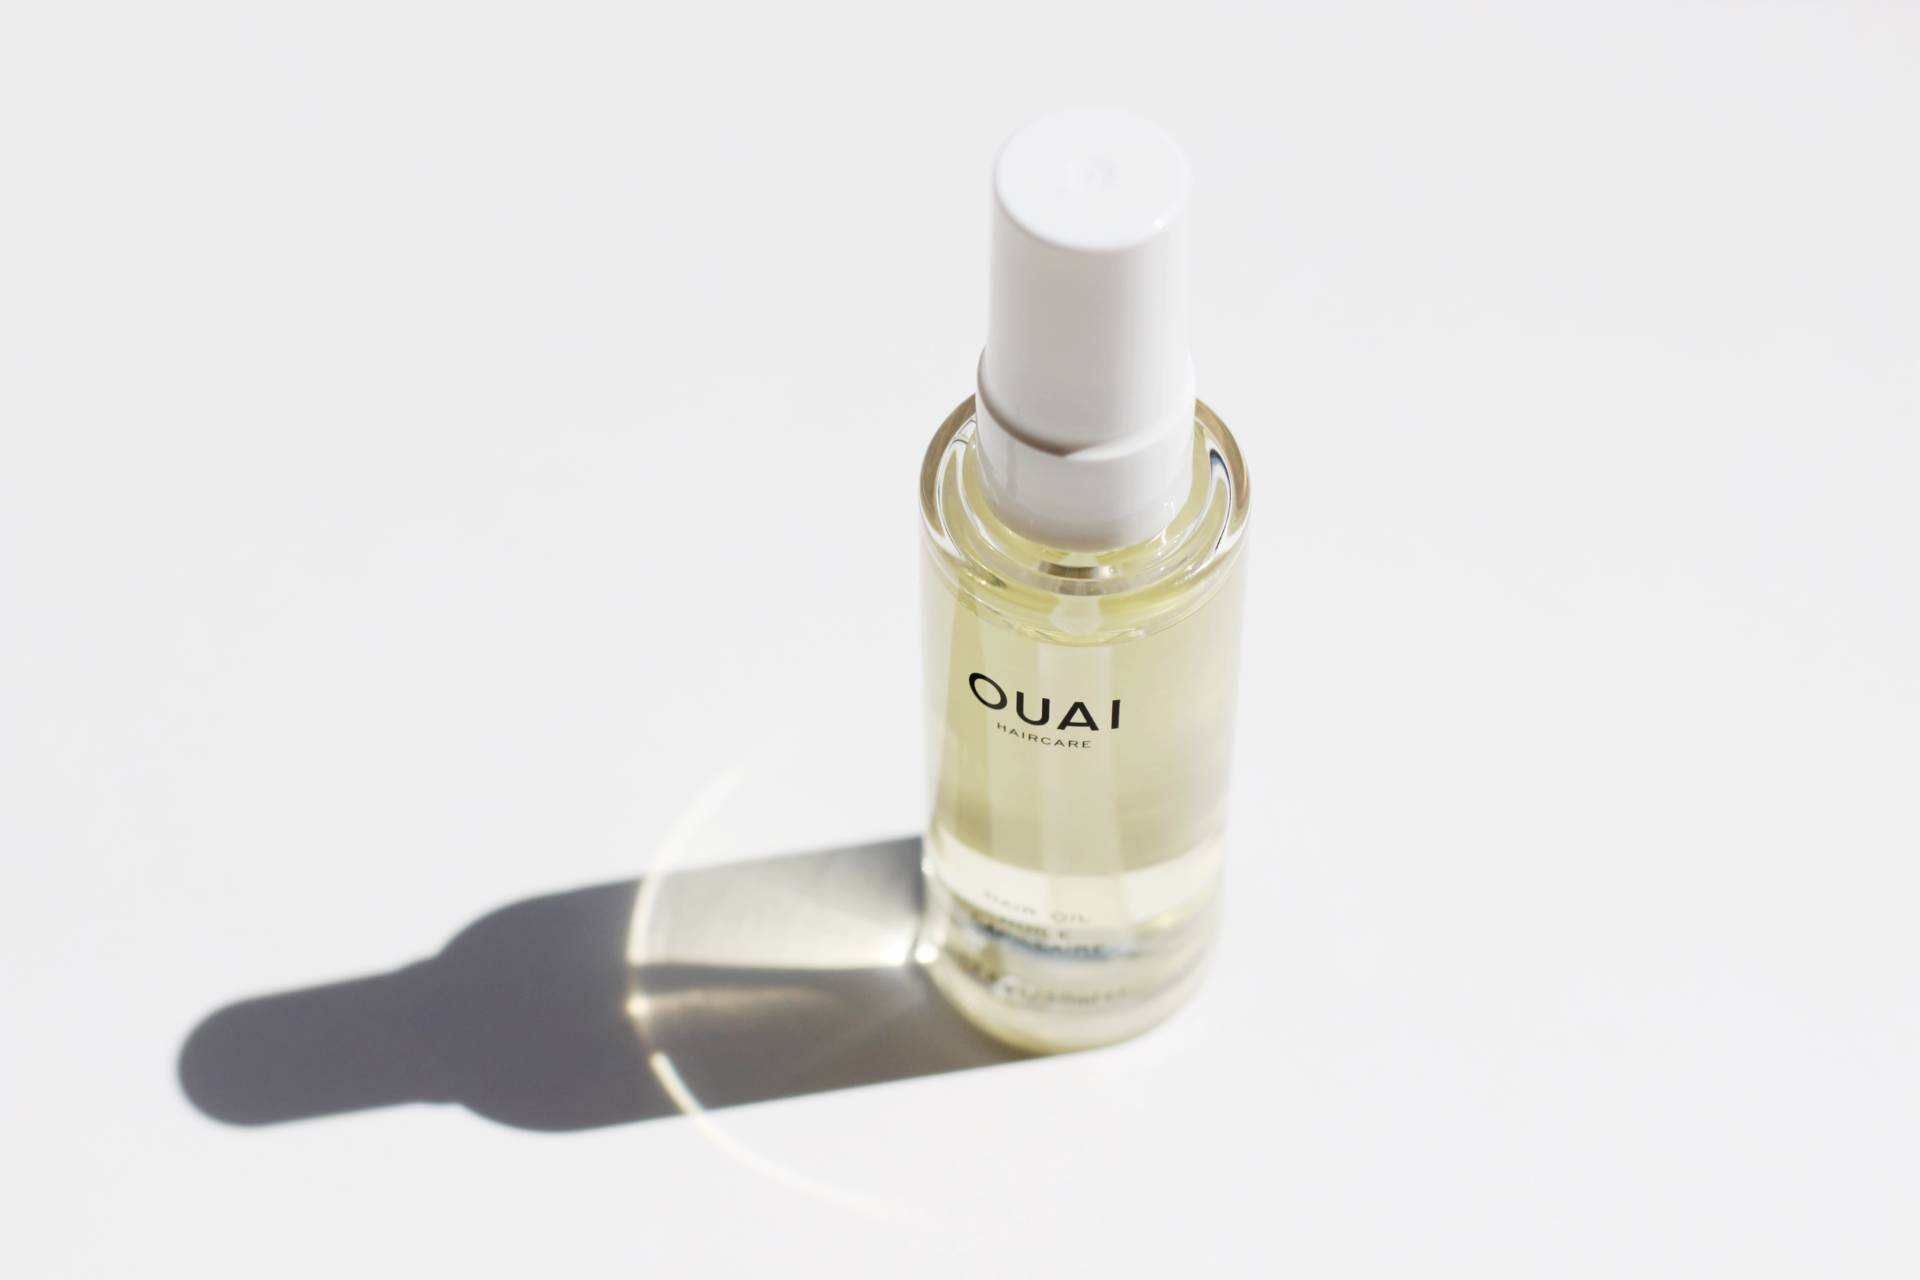 Ouai_Hair_Oil